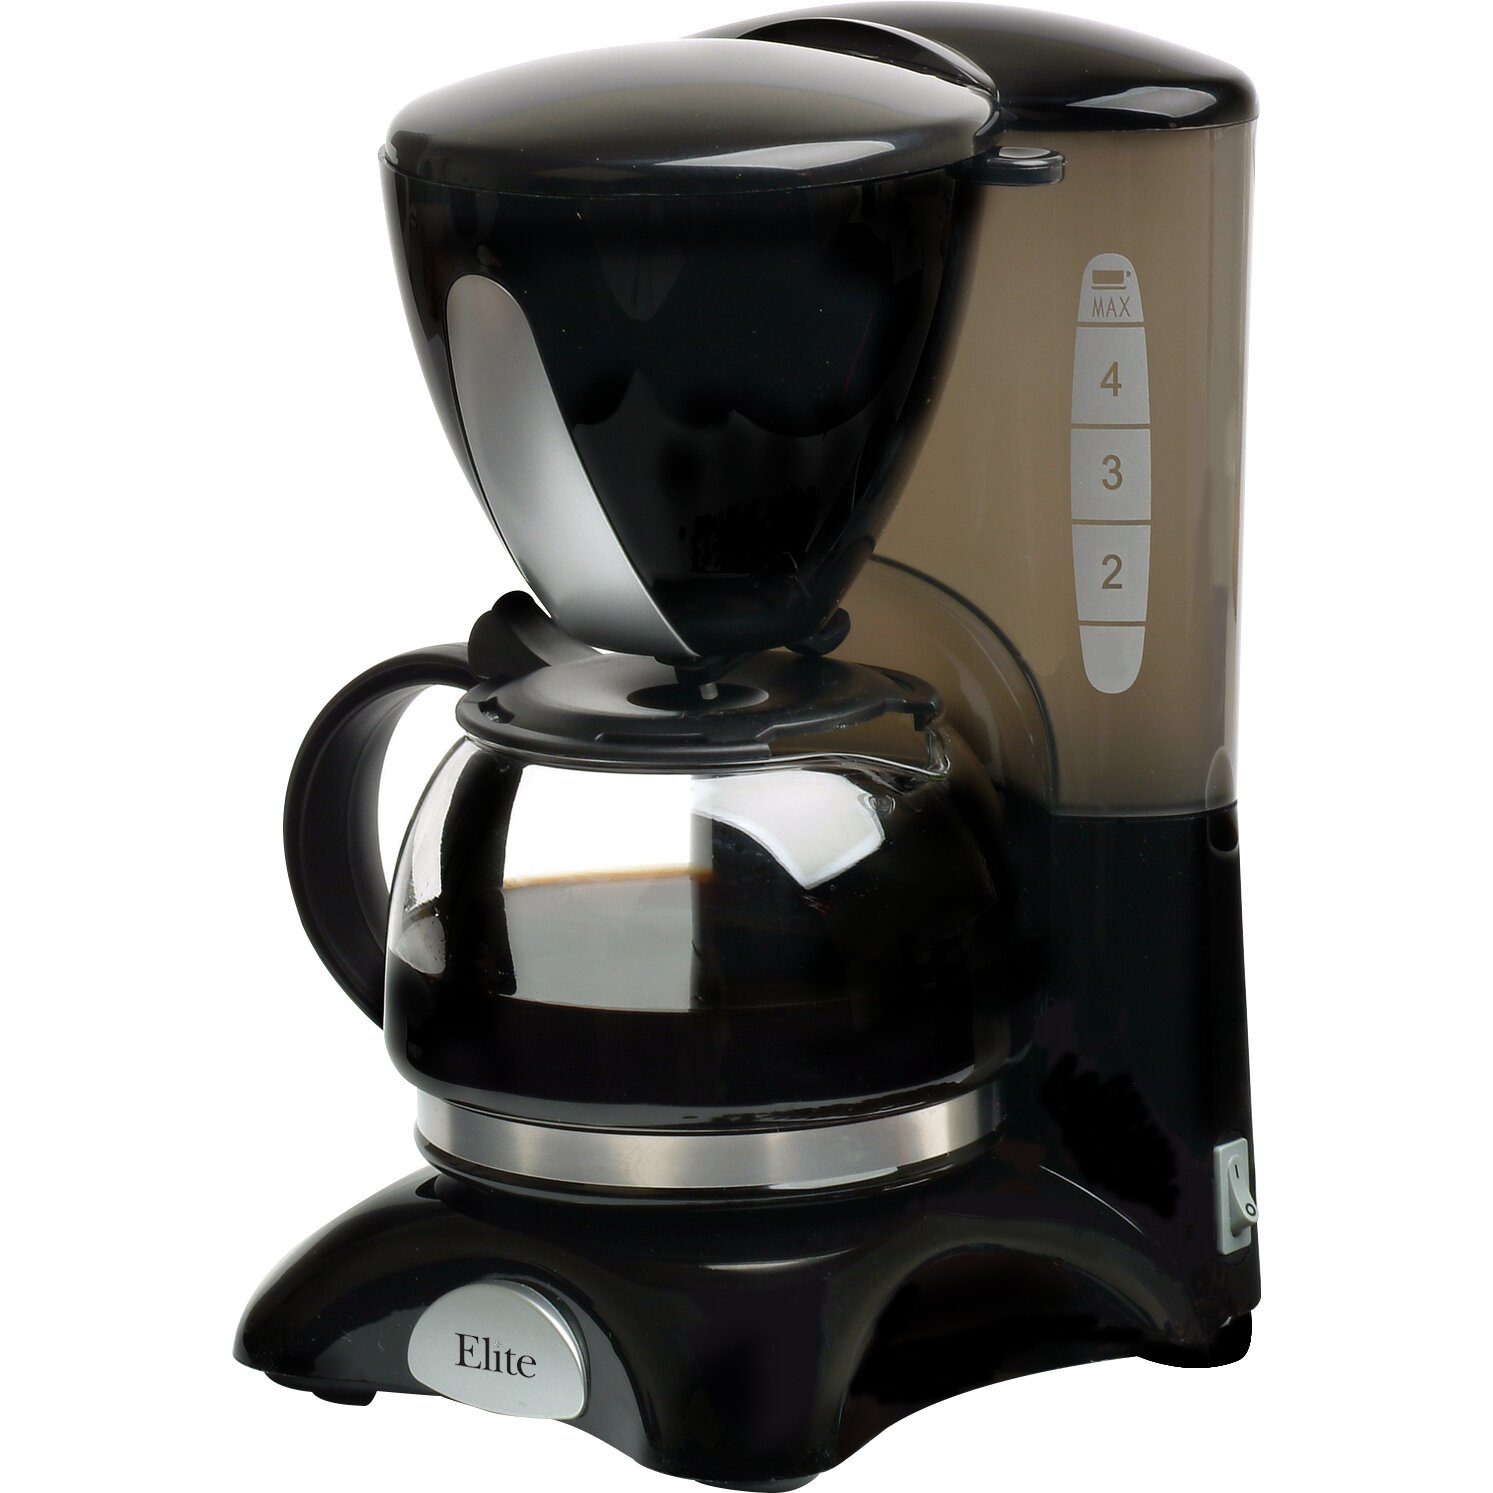 Coffee Maker Reviews 4 Cup : Elite by Maxi-Matic Cuisine 4 Cup Coffee Maker & Reviews Wayfair